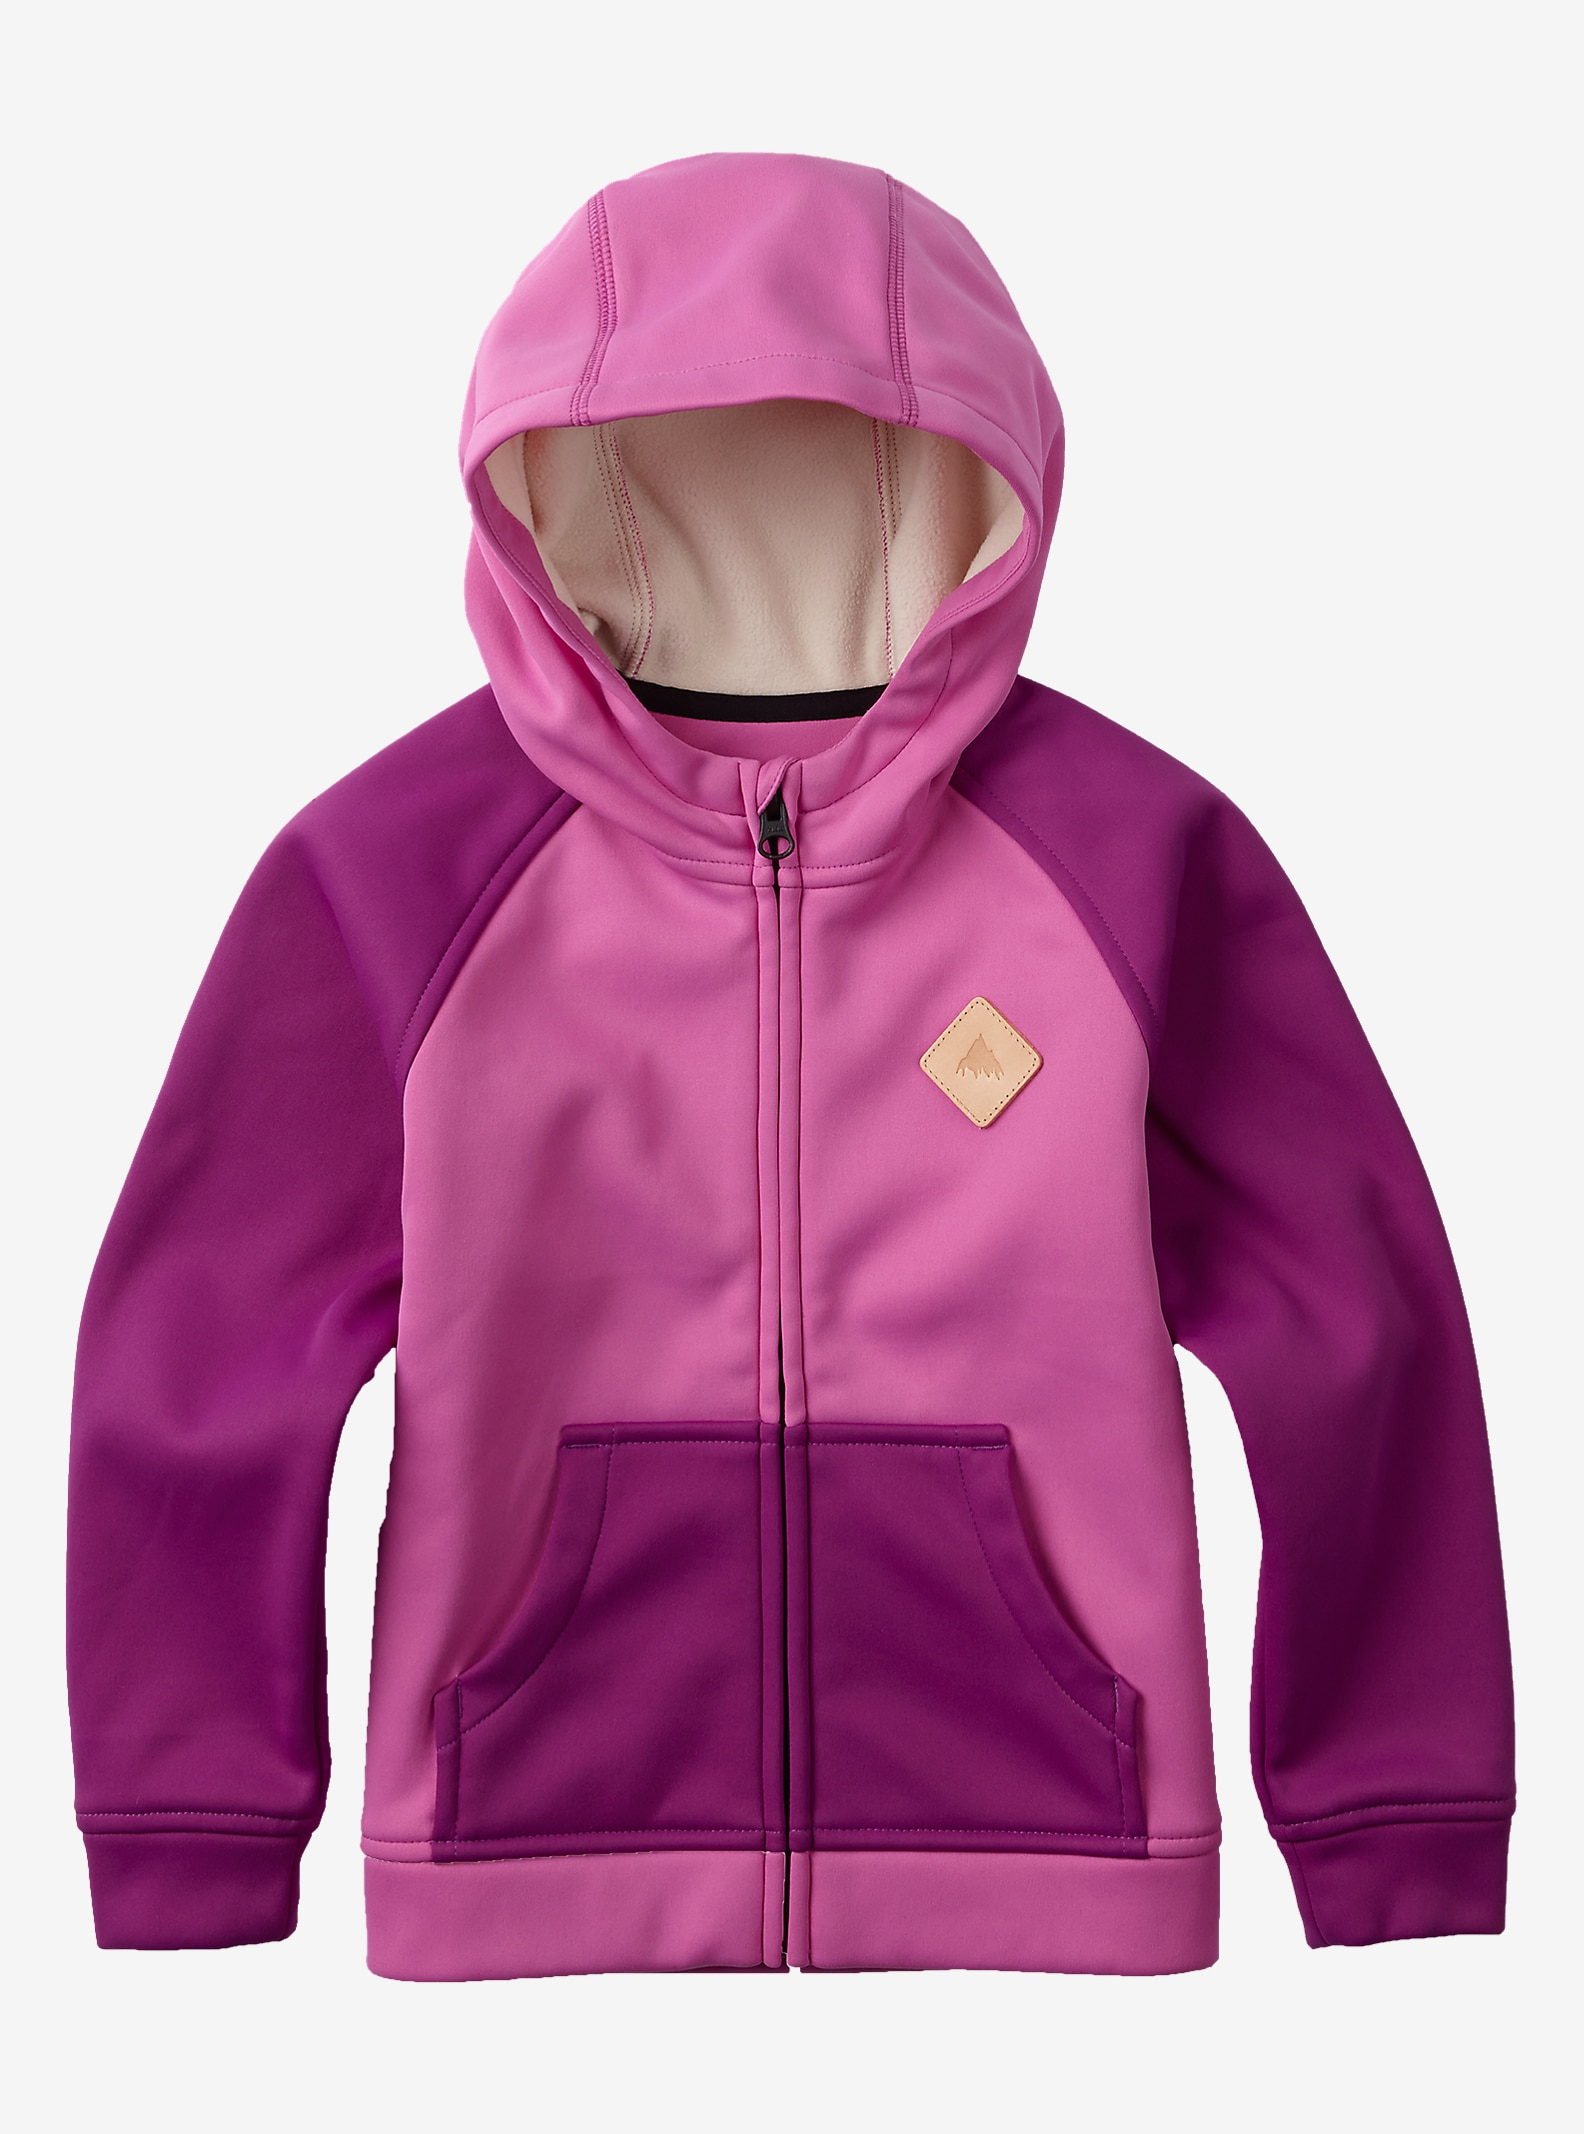 Burton Girls' Mini Bonded Full-Zip Hoodie shown in Super Pink